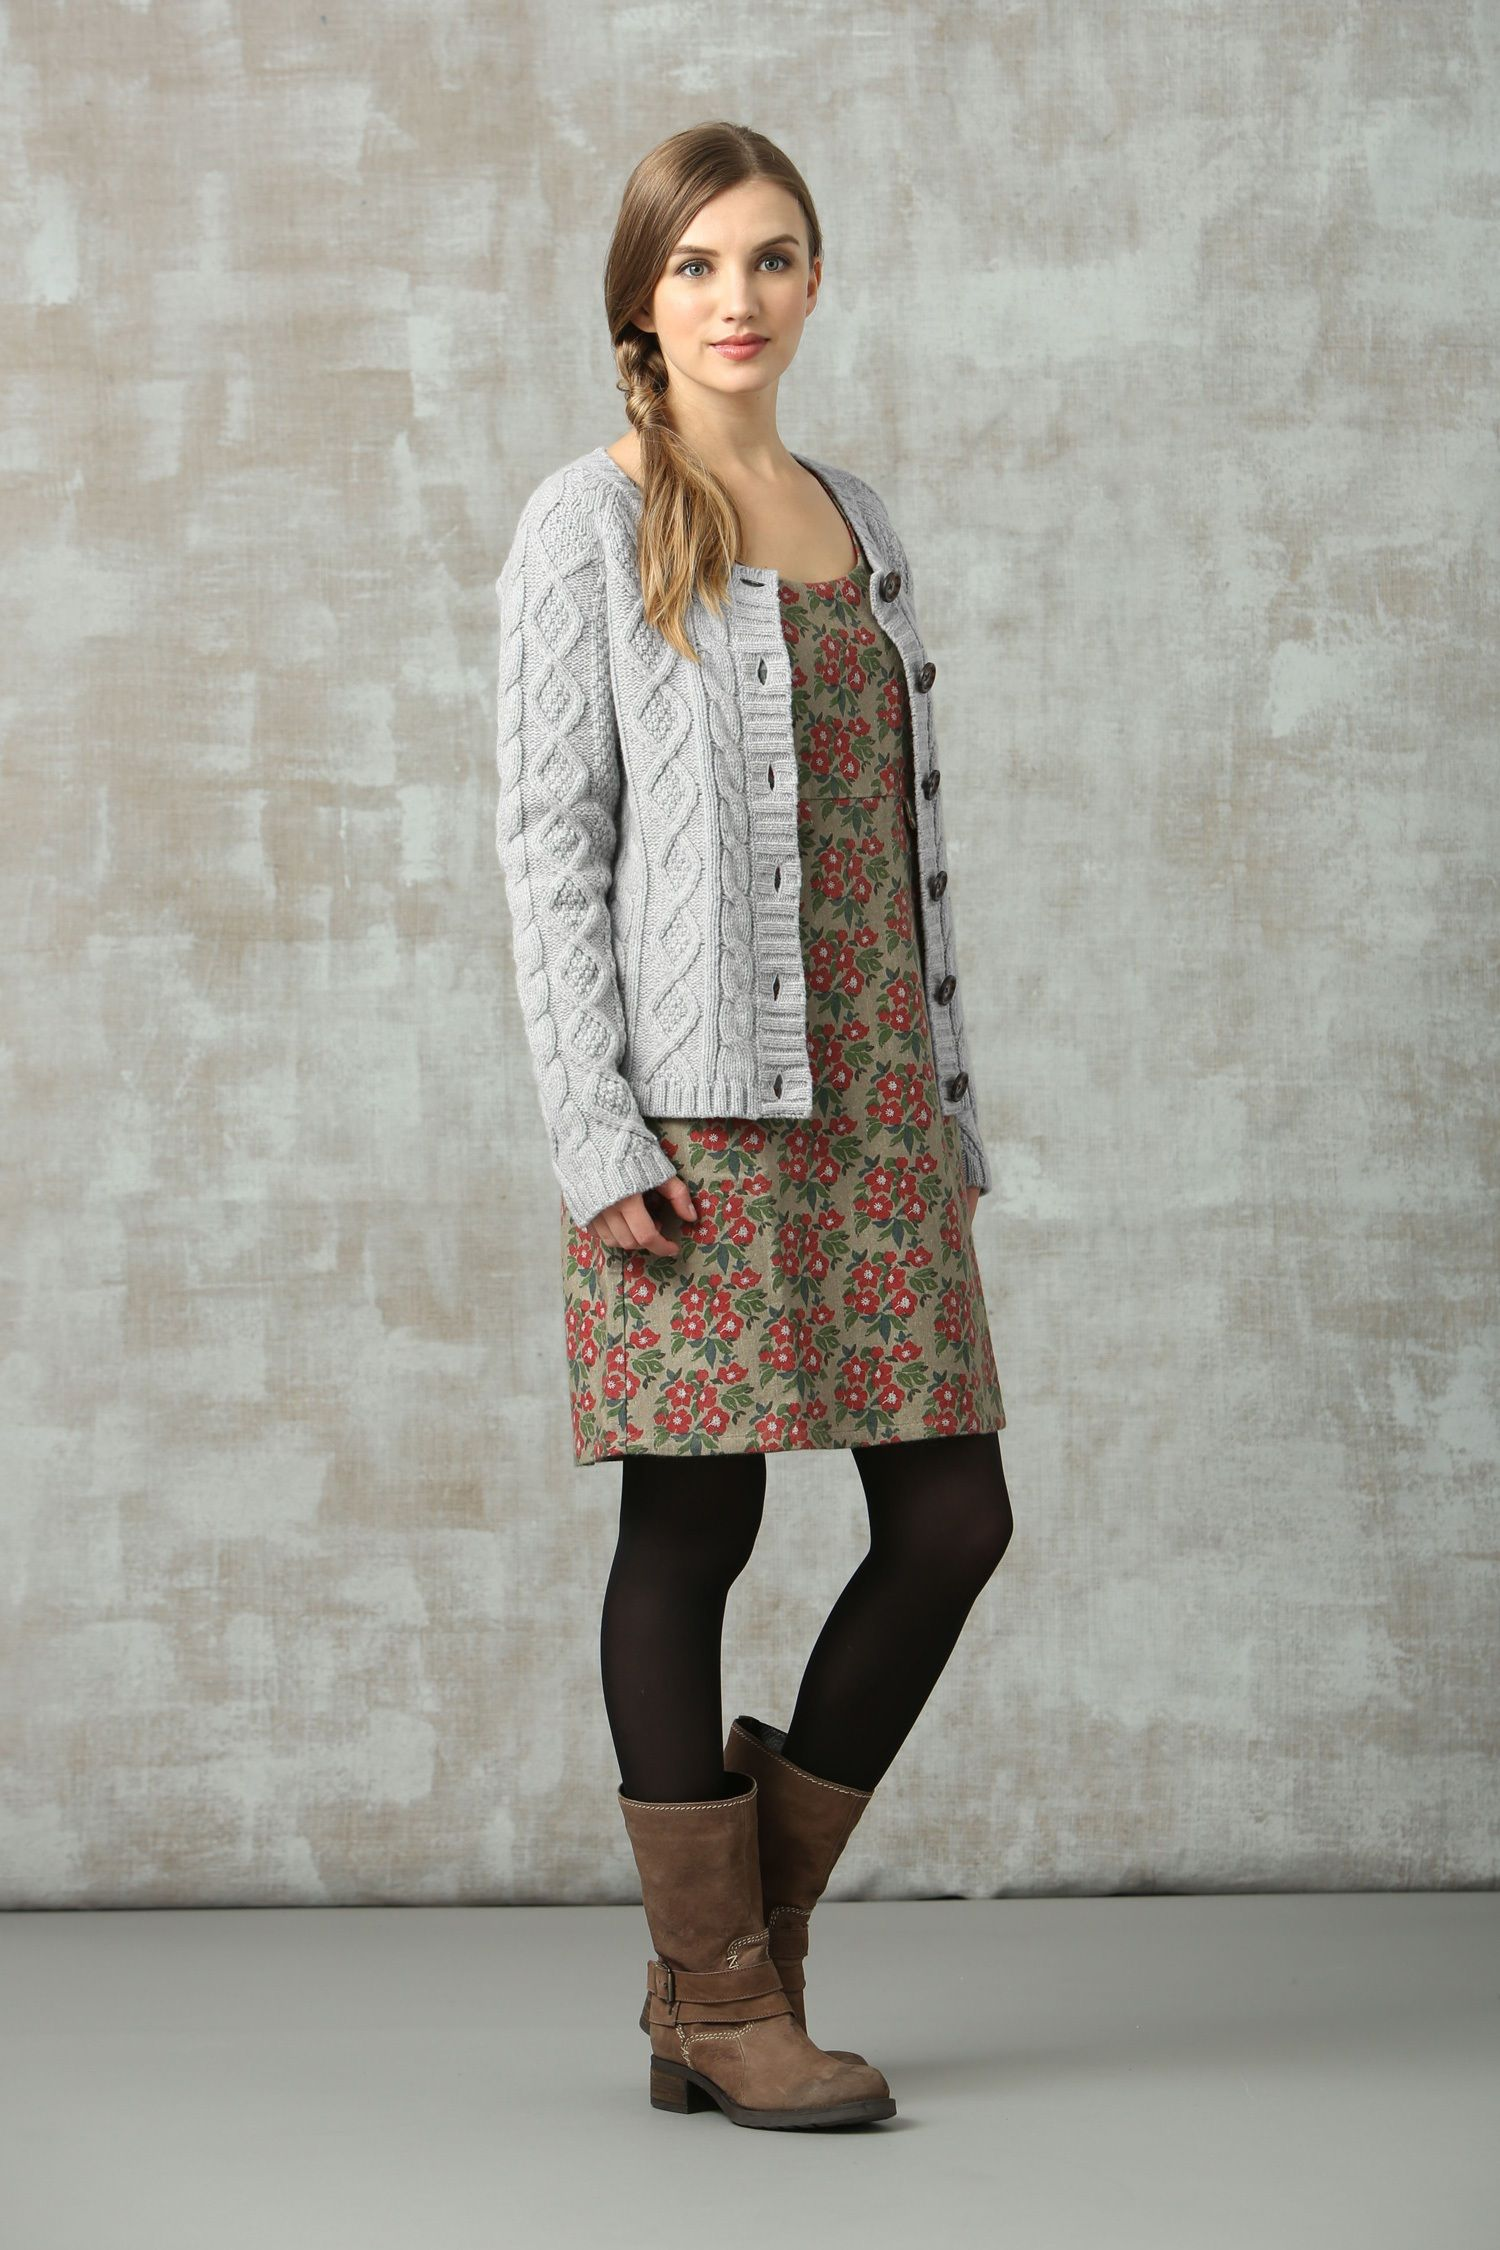 Shift dress + tights + mid-calf boots + cardie   Mid calf ...